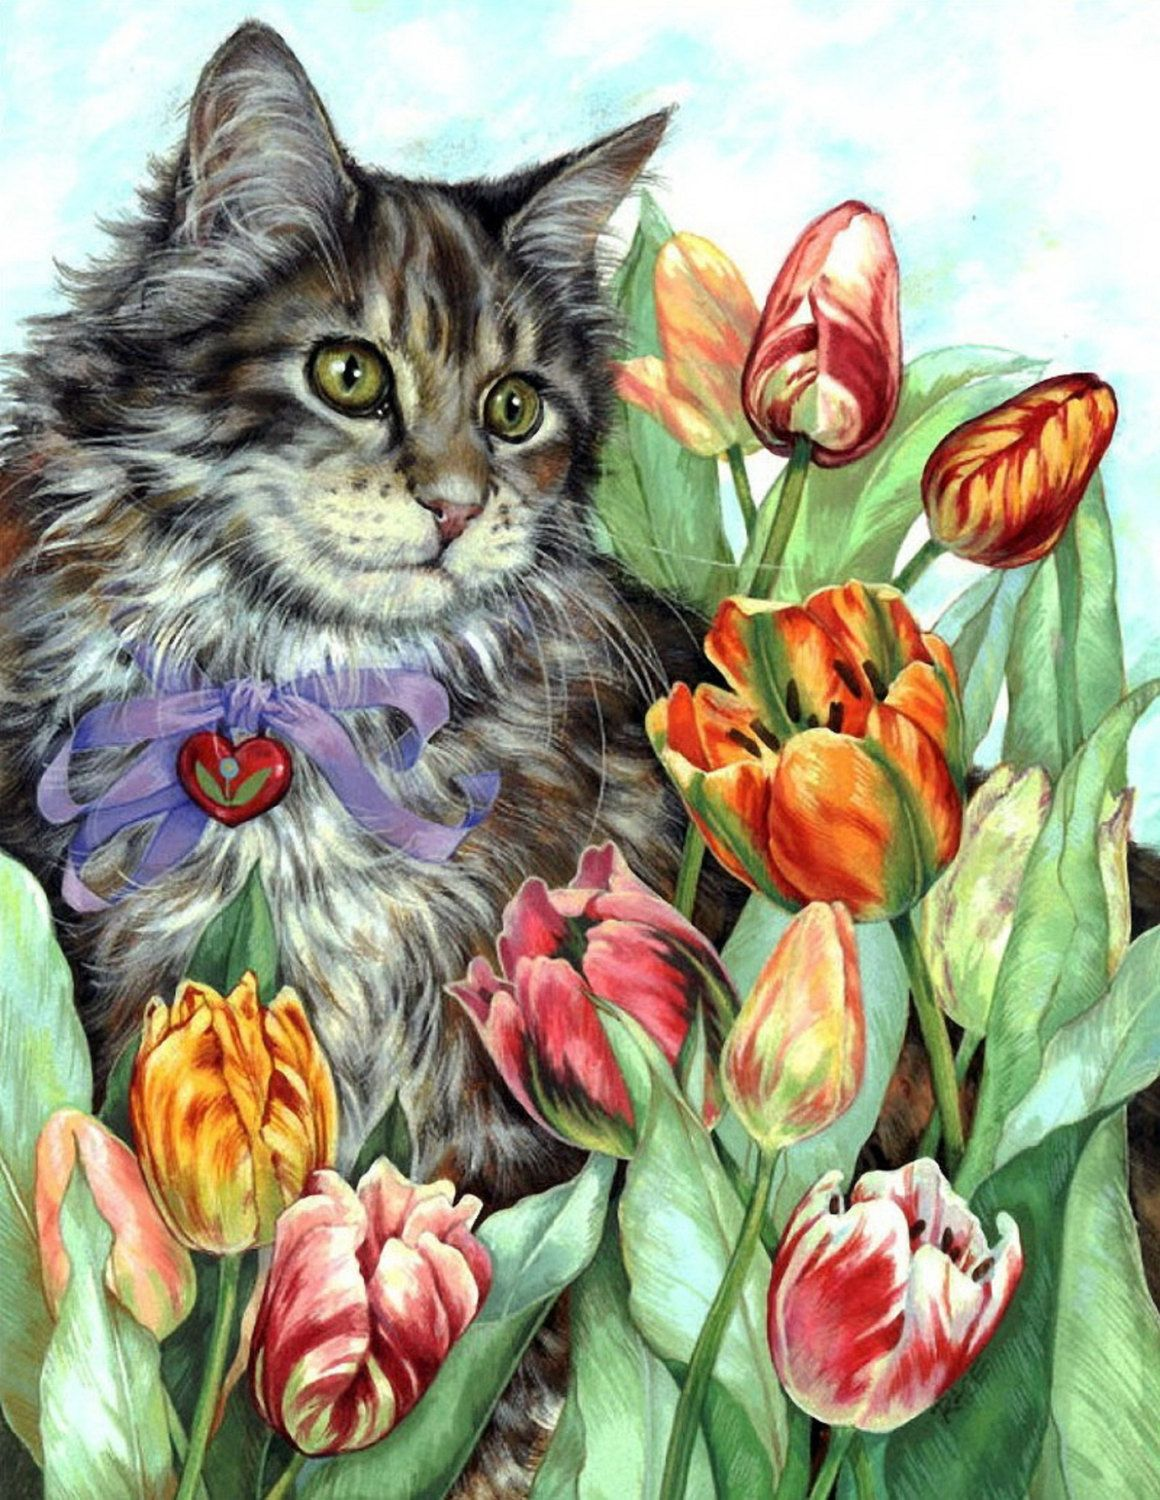 Sat With A Bouquet Of Tulips Cross Stitch Pattrn Needlecraft By Icrossstitchpattern On Etsy Cat Art Illustration Cat Painting Cat Artwork